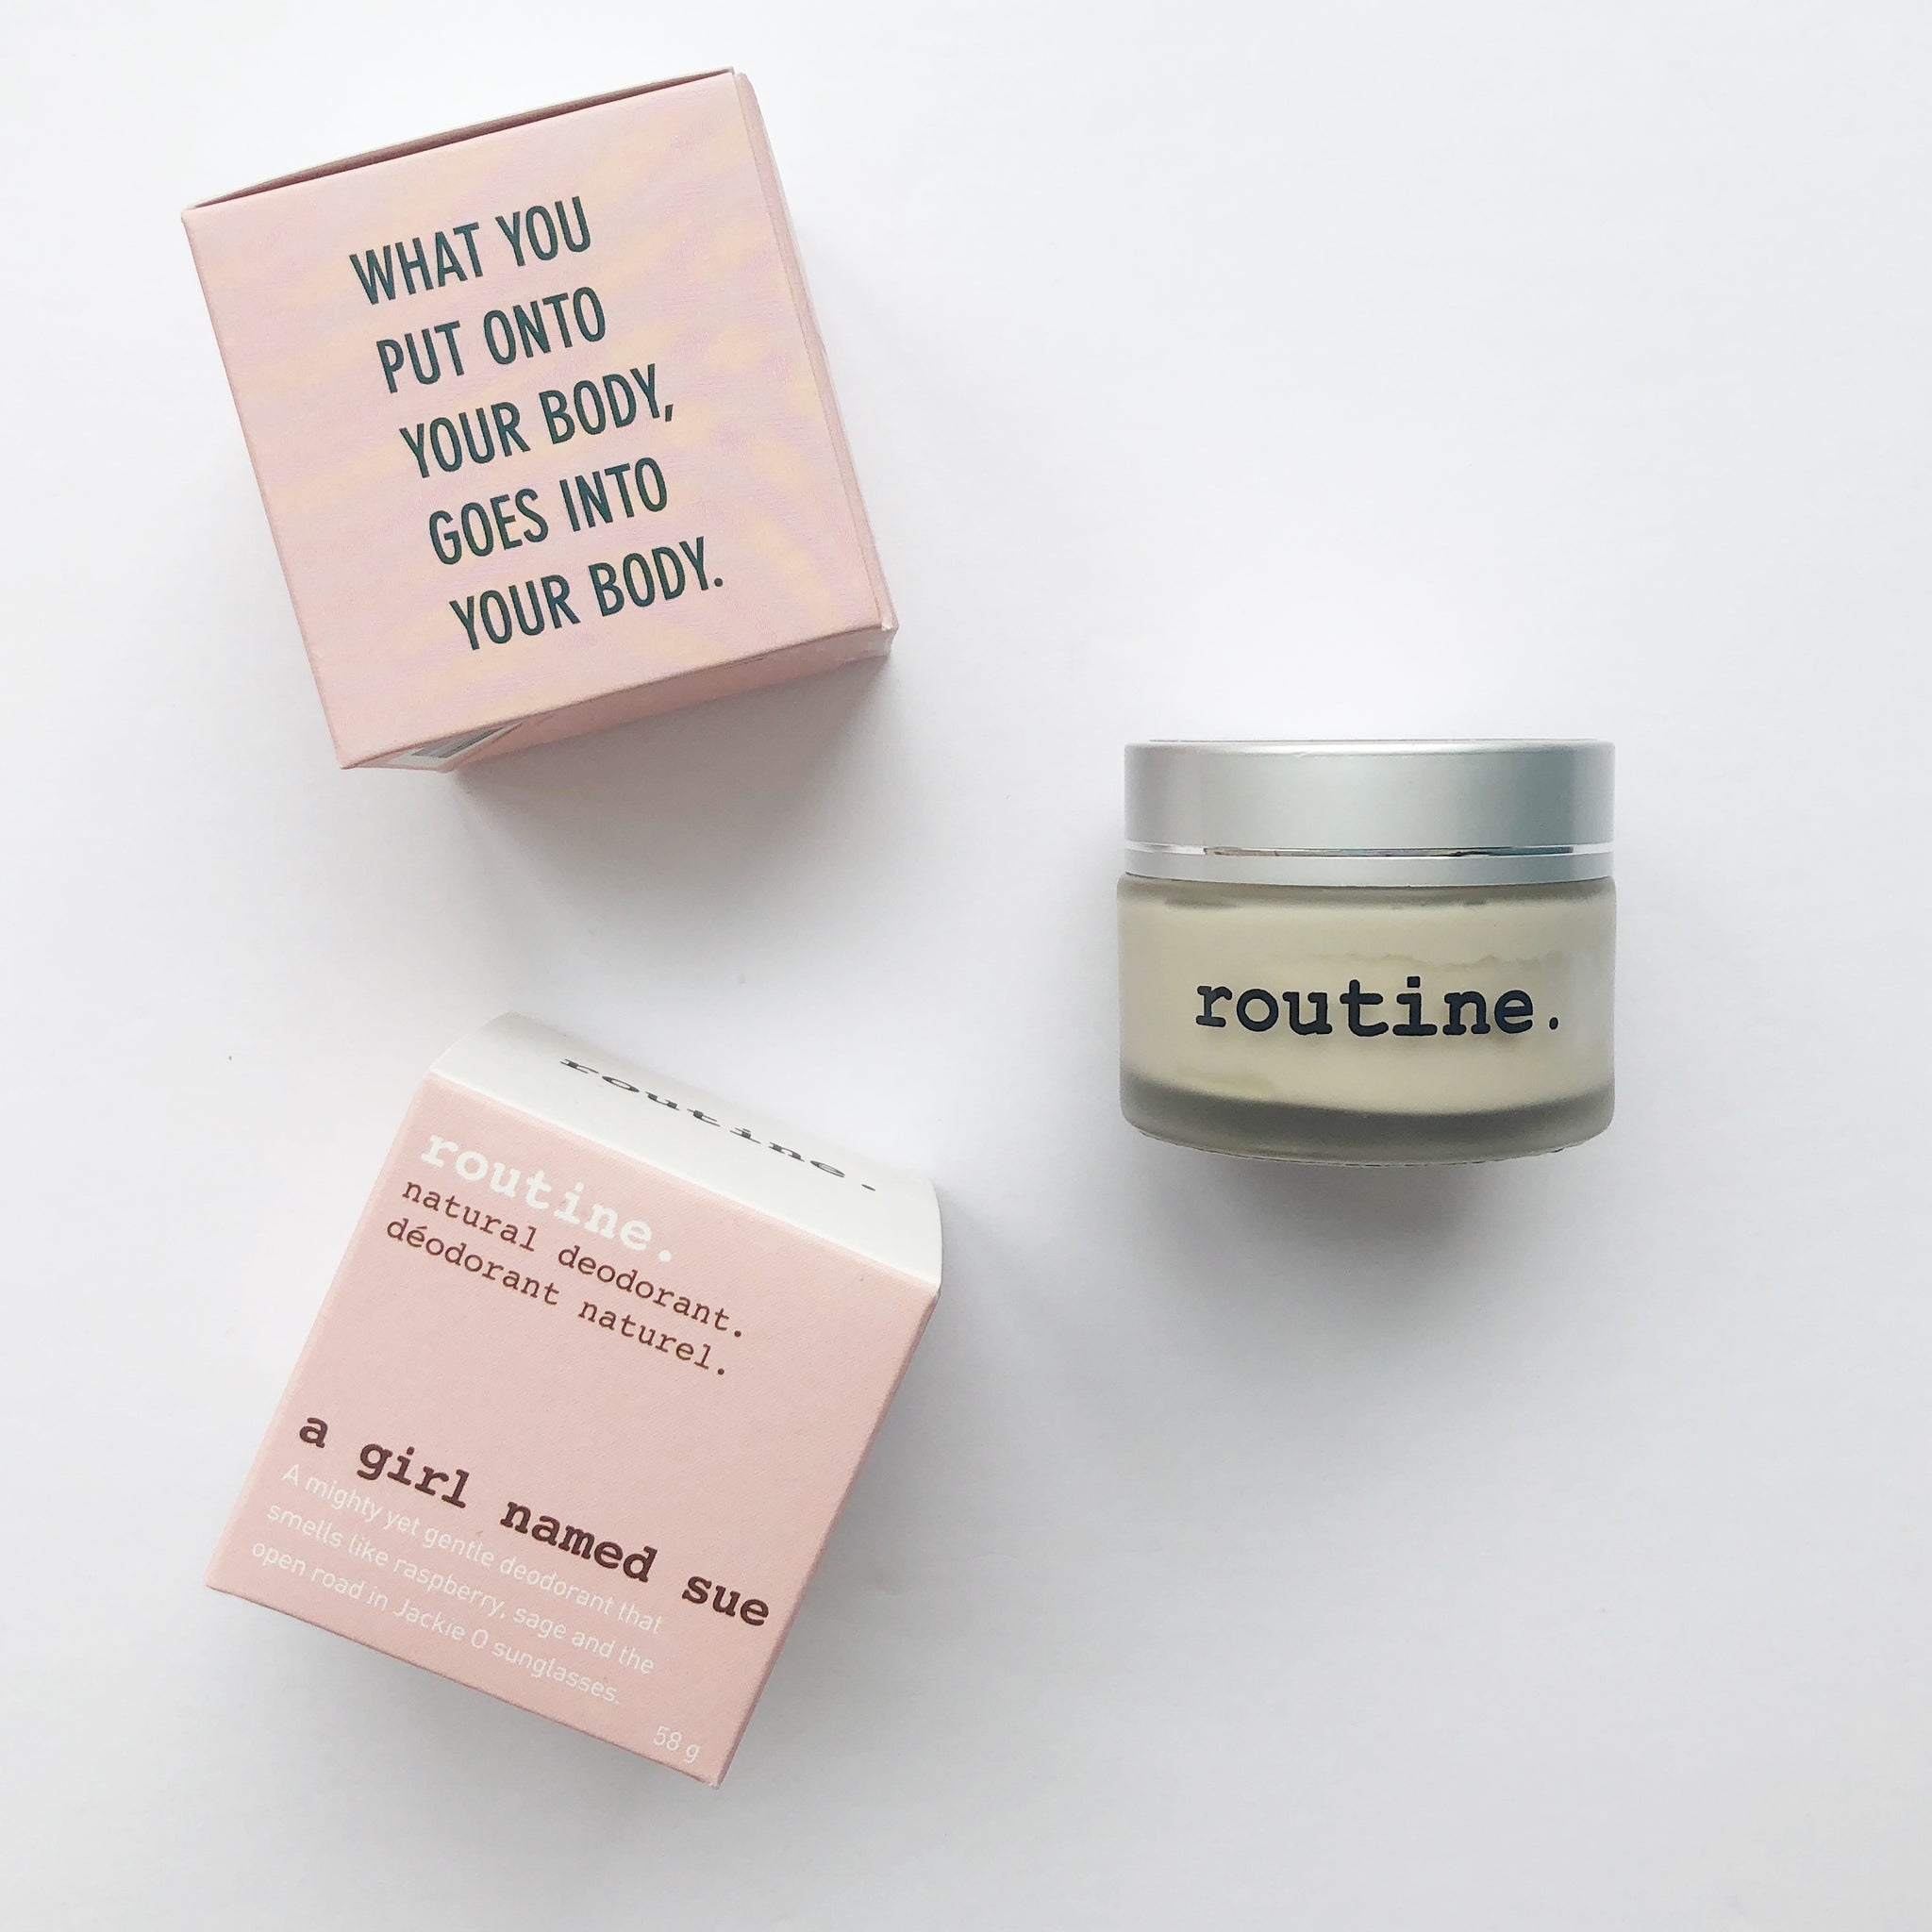 Routine Natural Deodorant - A Girl Named Sue